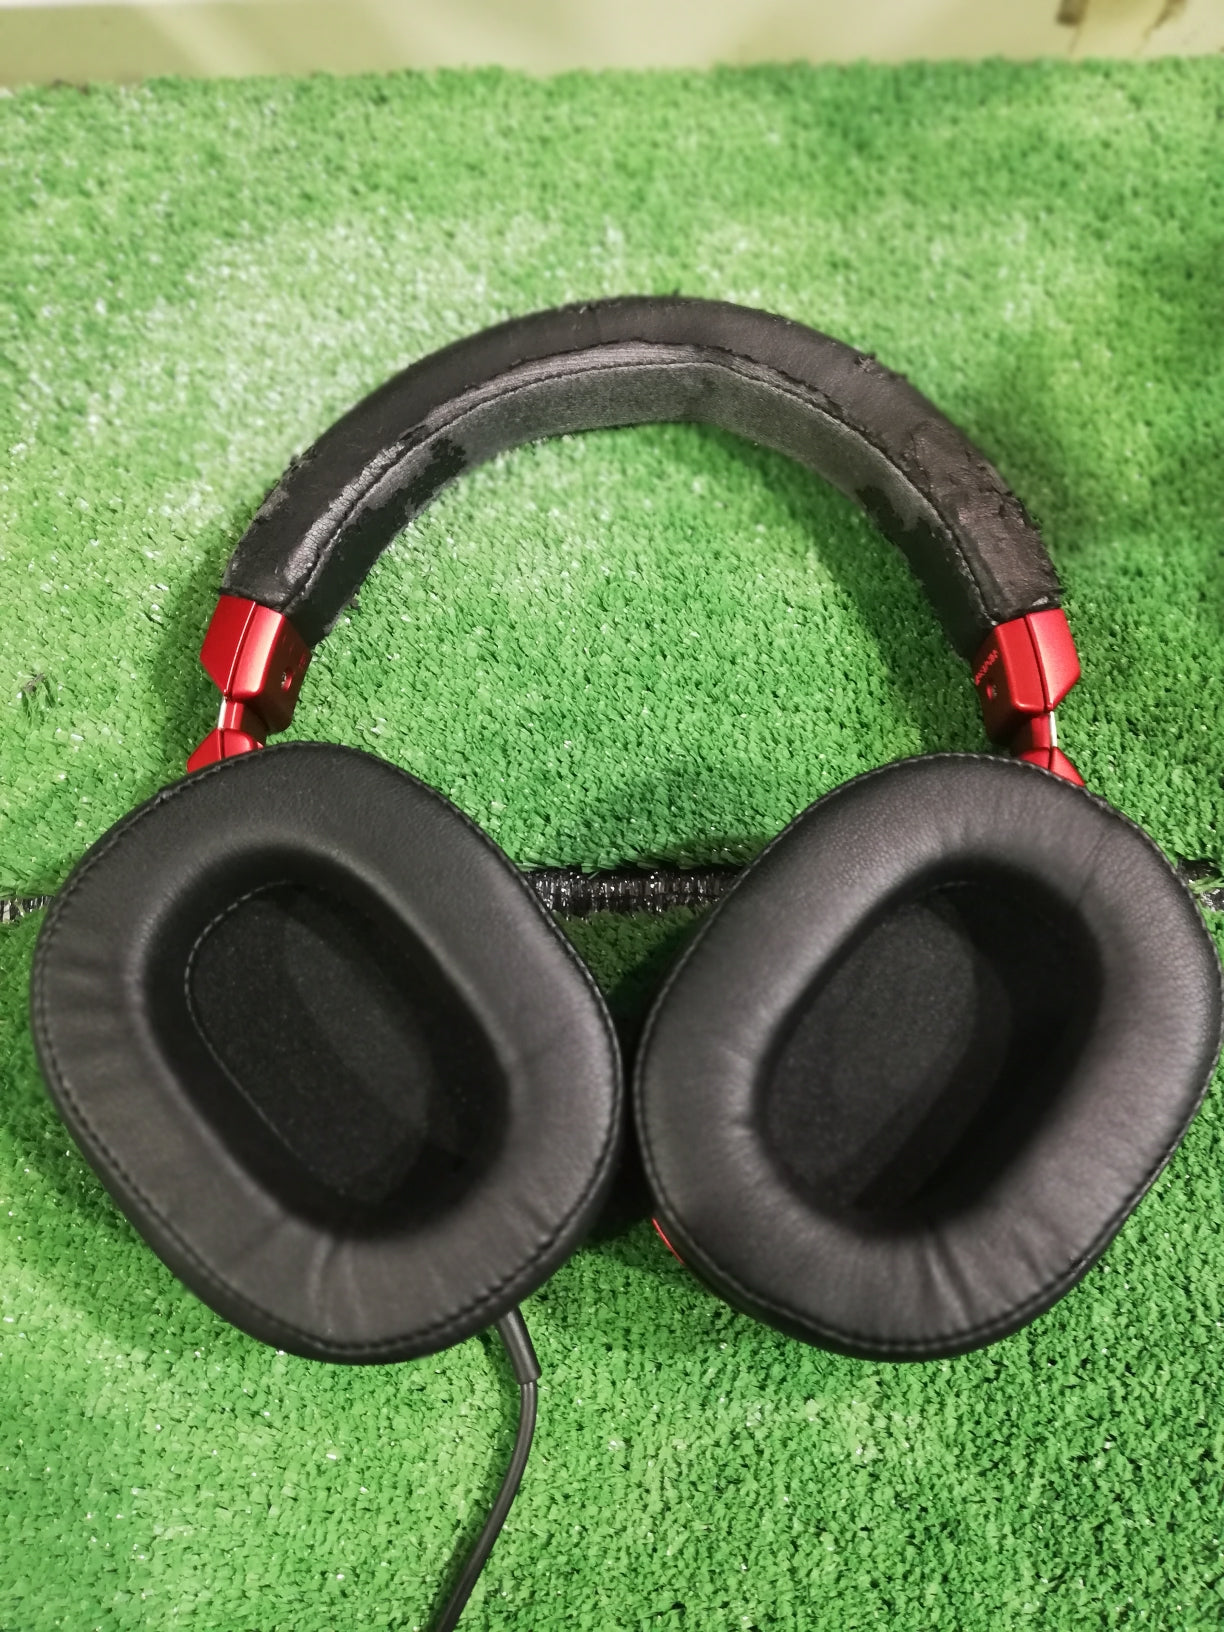 Audio Technica ATH-MSR7 Demo (Queensbay) - Jaben - The Little Headphone Store